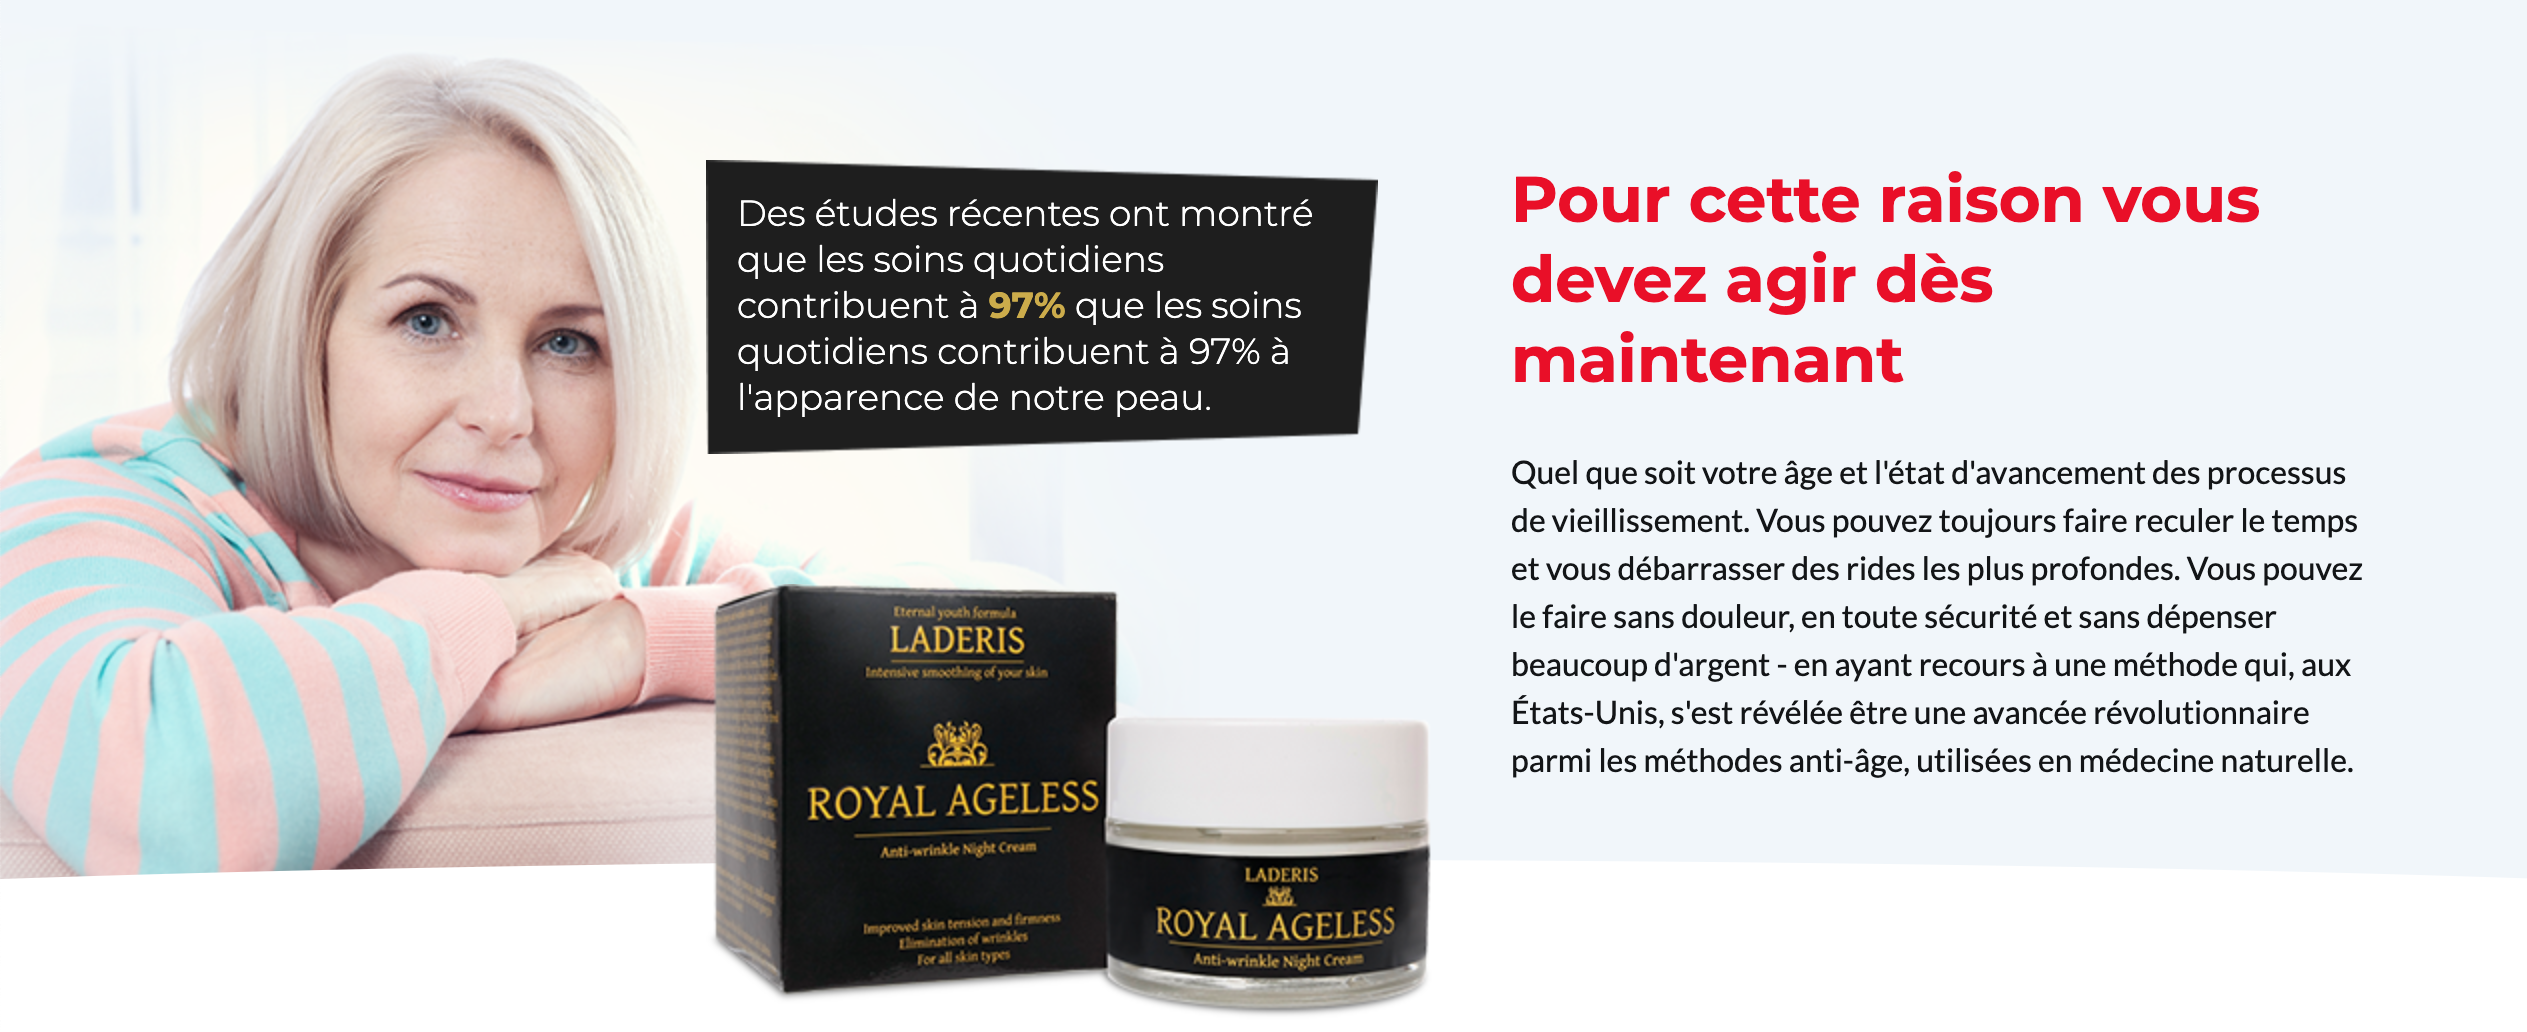 royal-ageless-vente